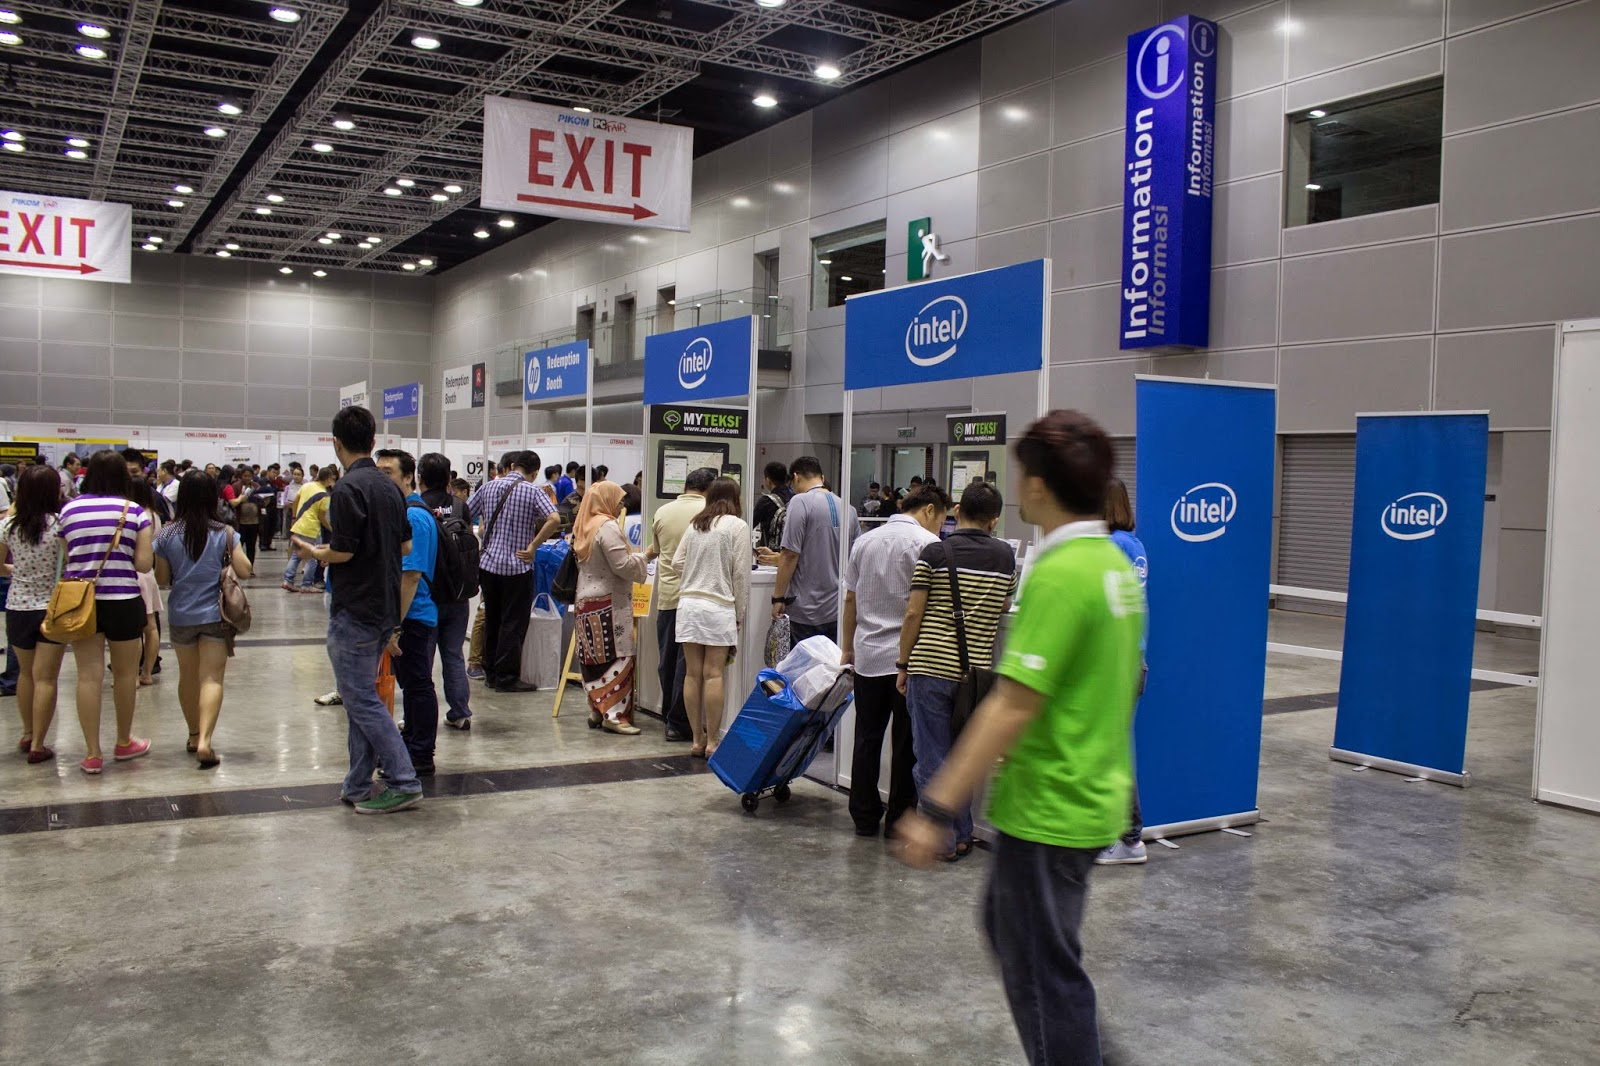 Coverage of PIKOM PC Fair 2014 @ Kuala Lumpur Convention Center 405